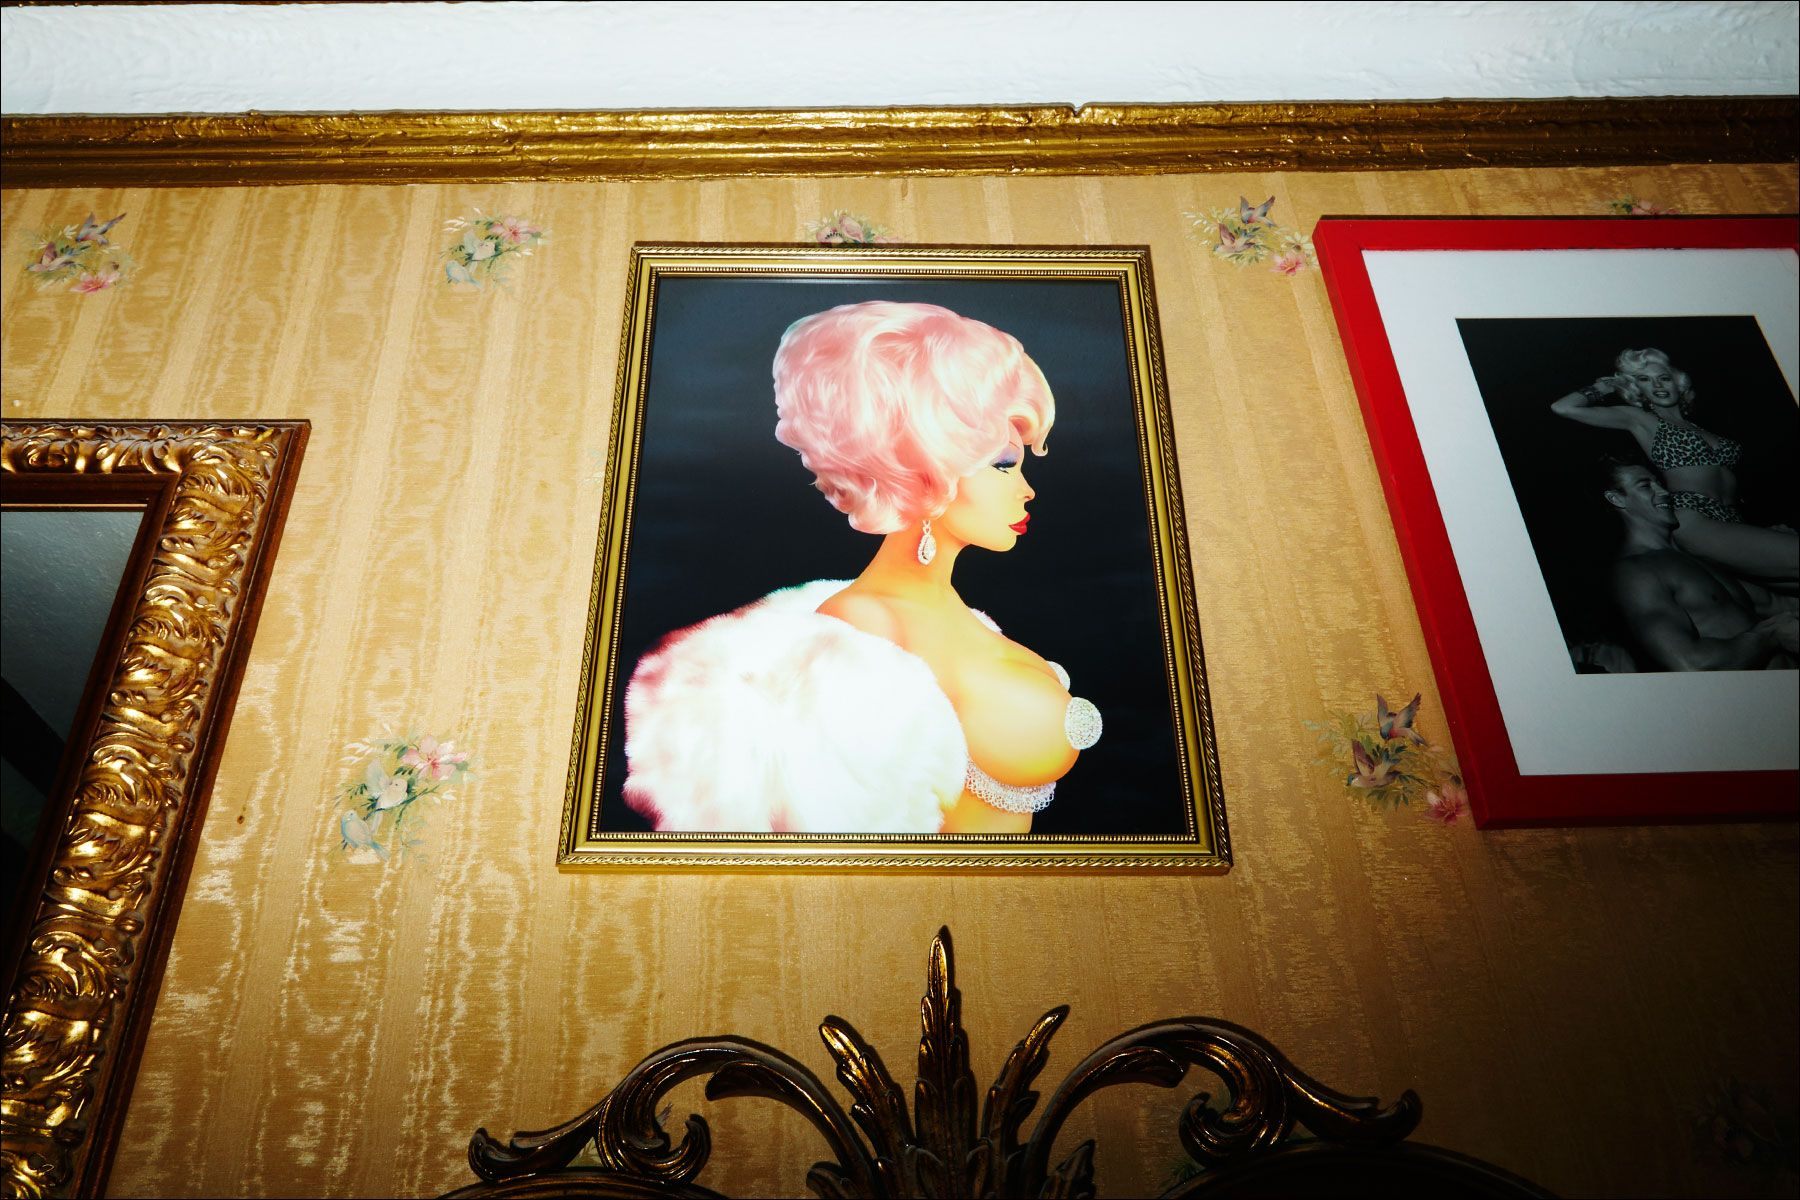 A Scott Ewalt painting of Amanda Lepore hangs in her Manhattan apartment. Photography by Alexander Thompson for Ponyboy magazine.